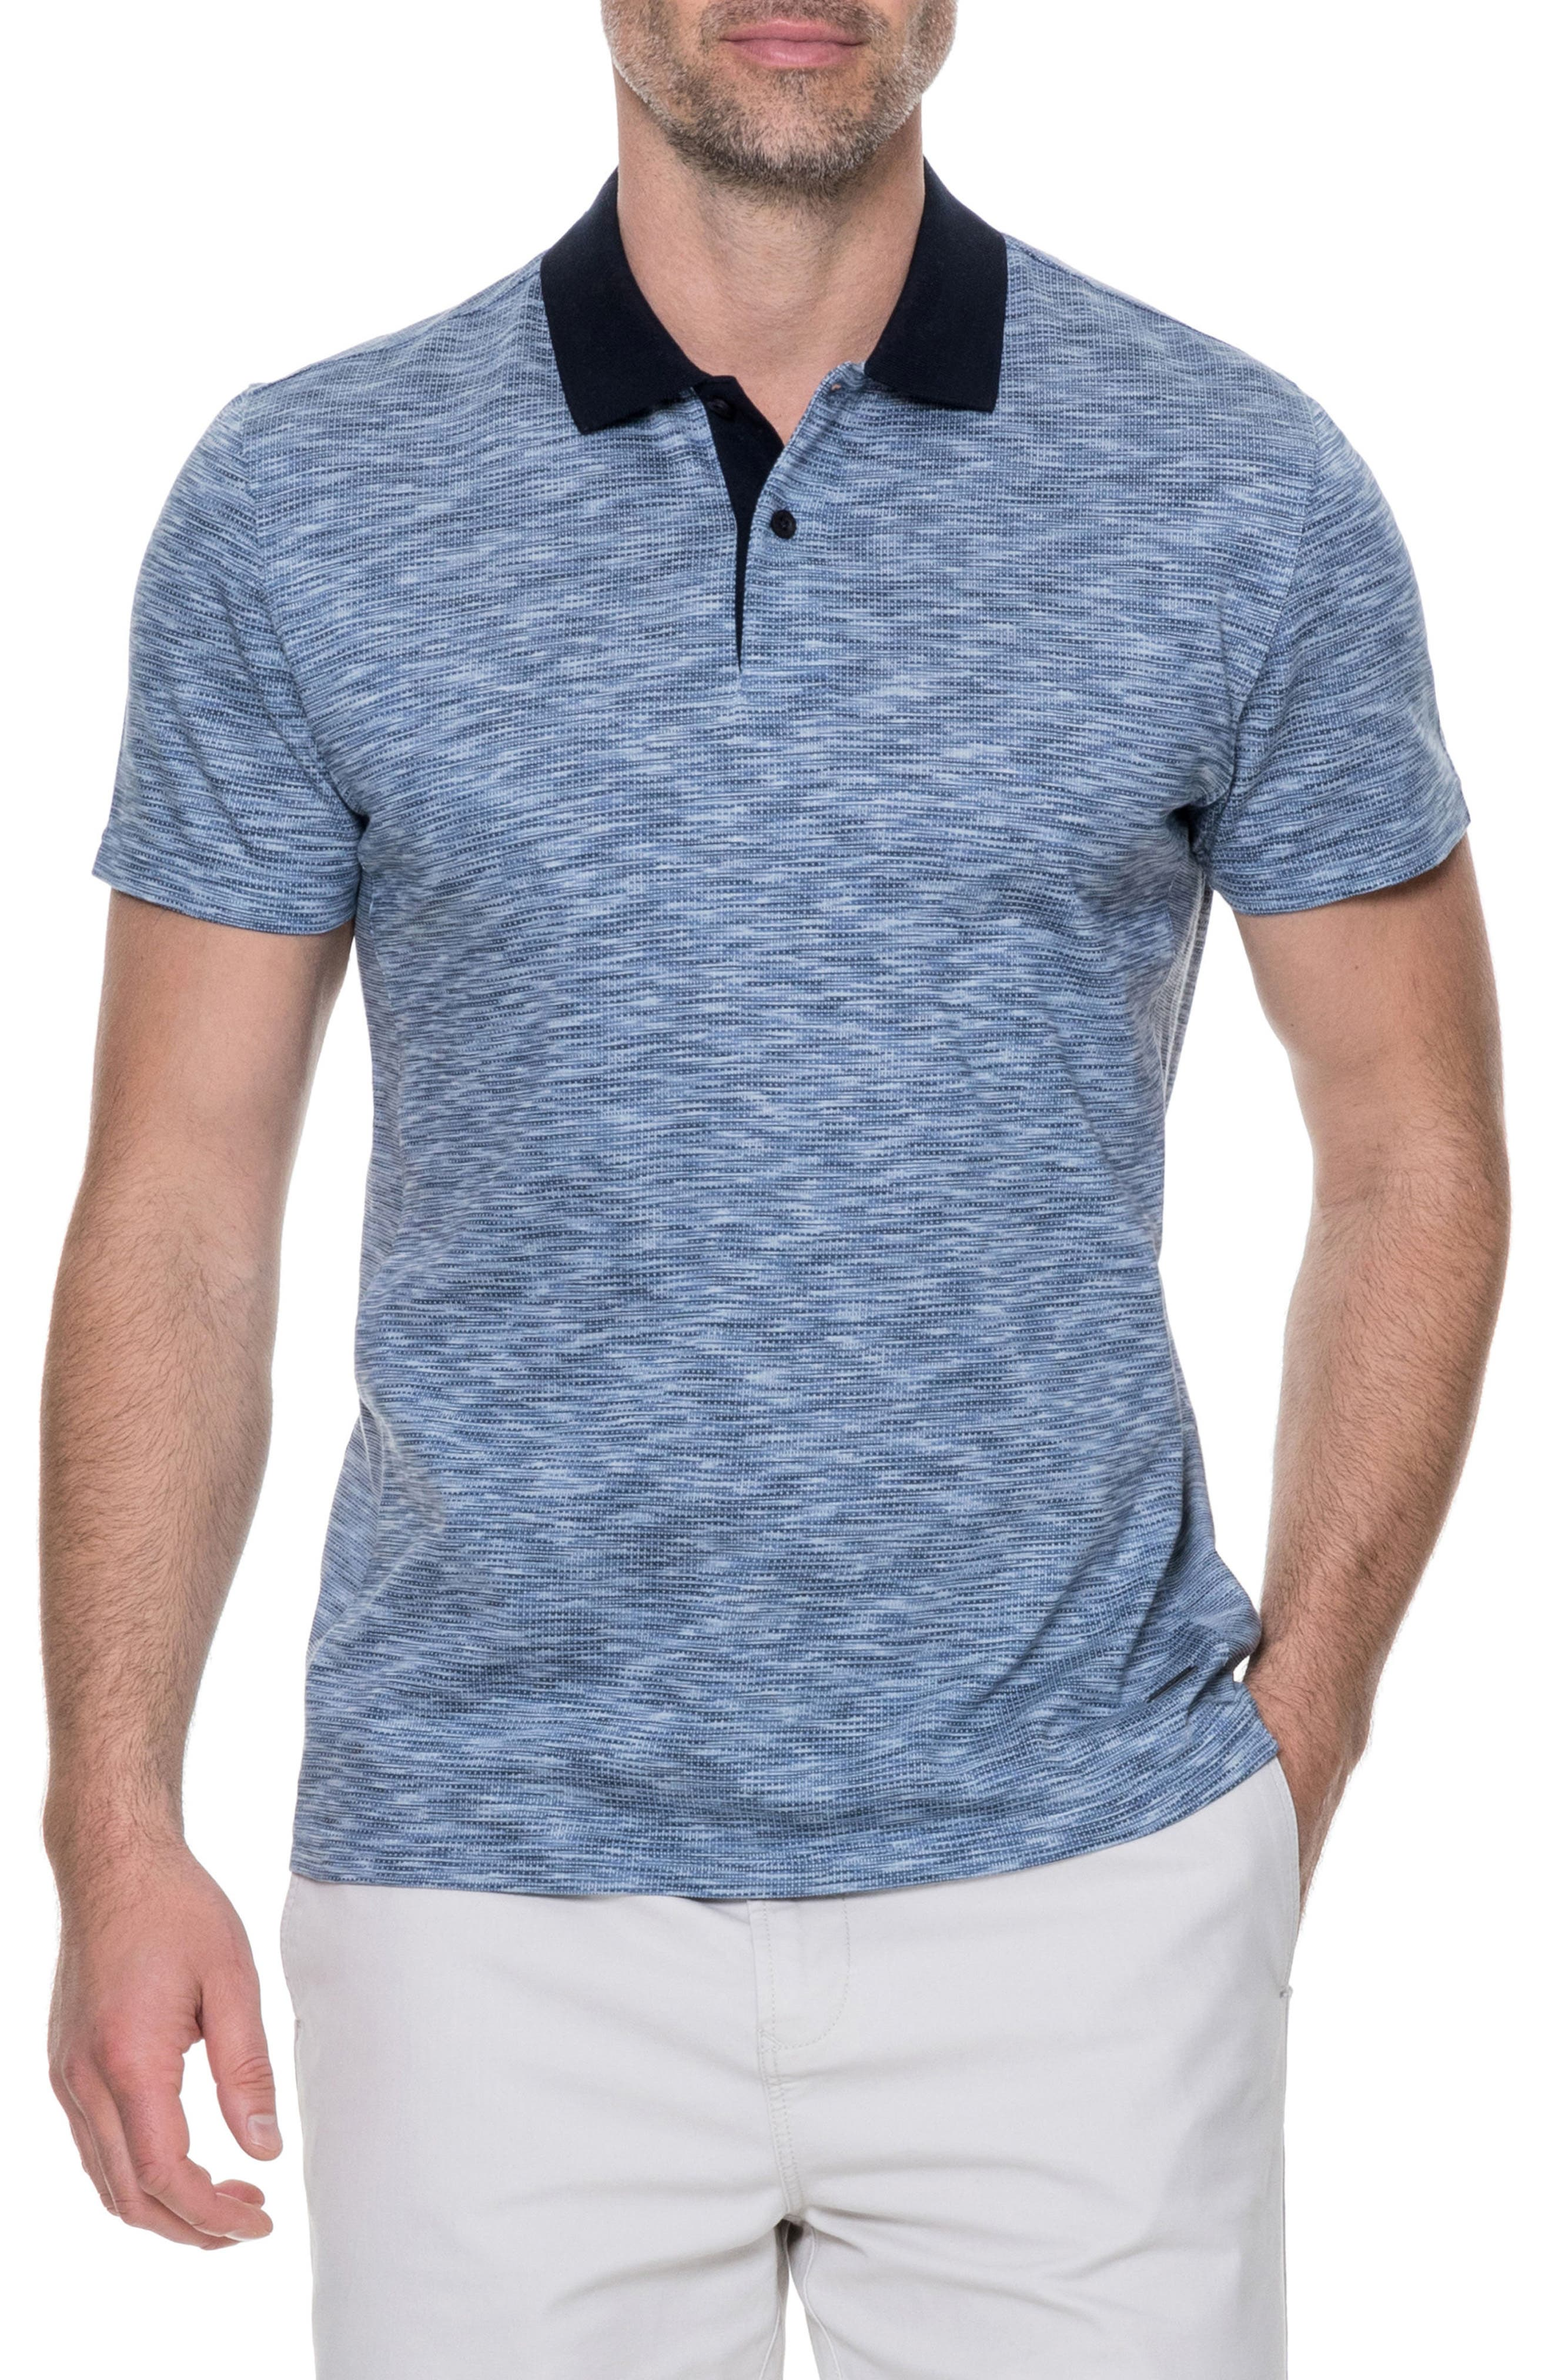 Raywood Sports Fit Polo,                         Main,                         color, Blue Steel